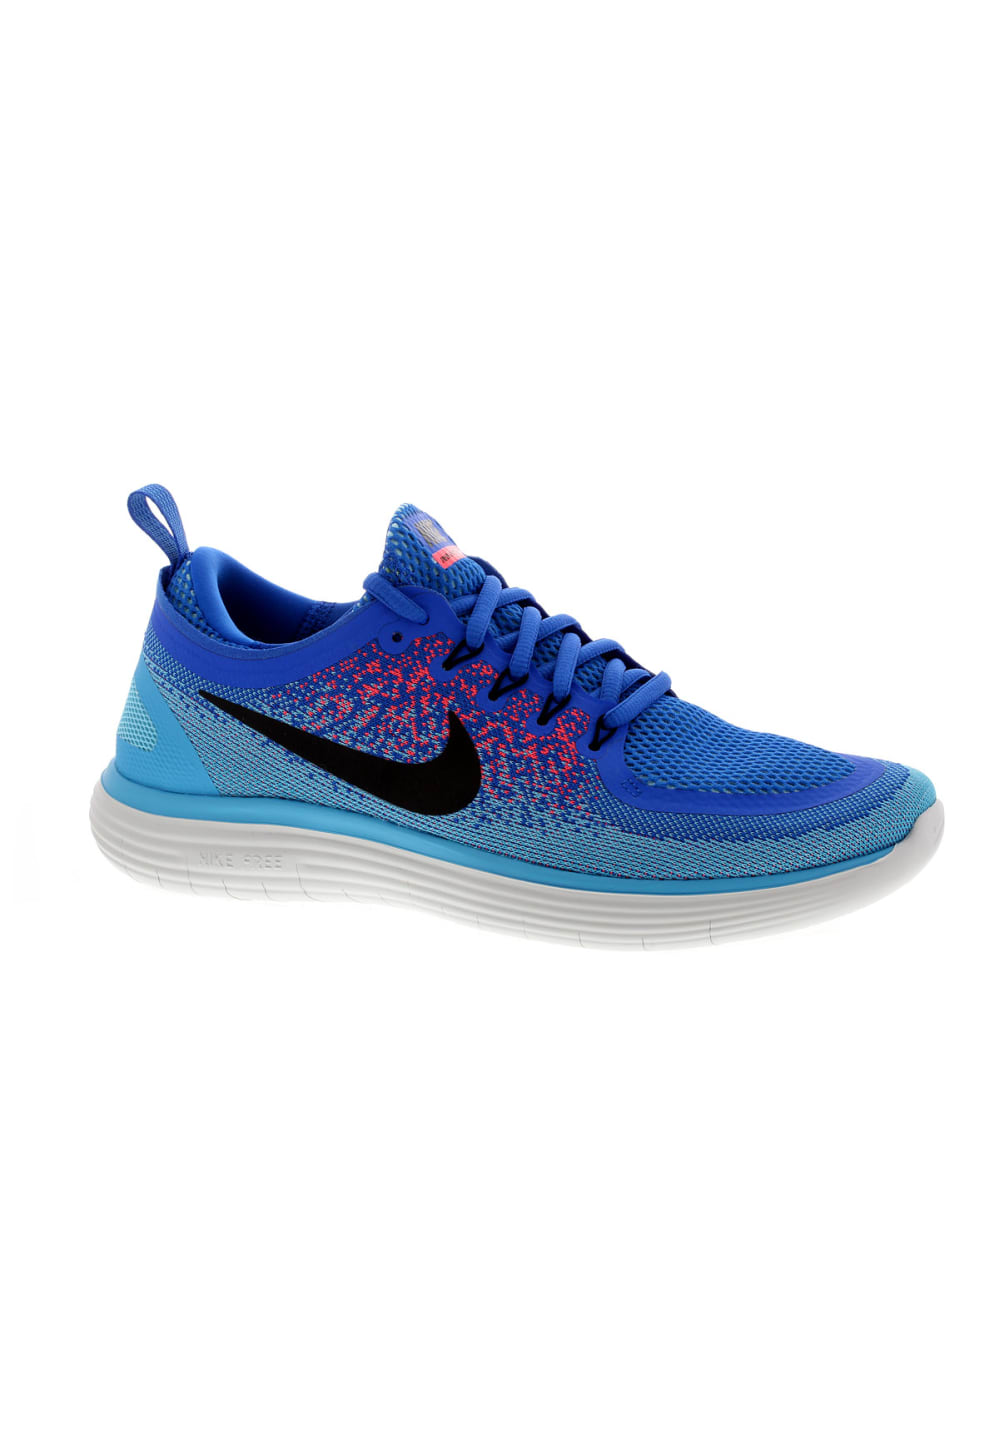 9f32ba728f572 Nike Free RN Distance 2 - Running shoes for Men - Blue